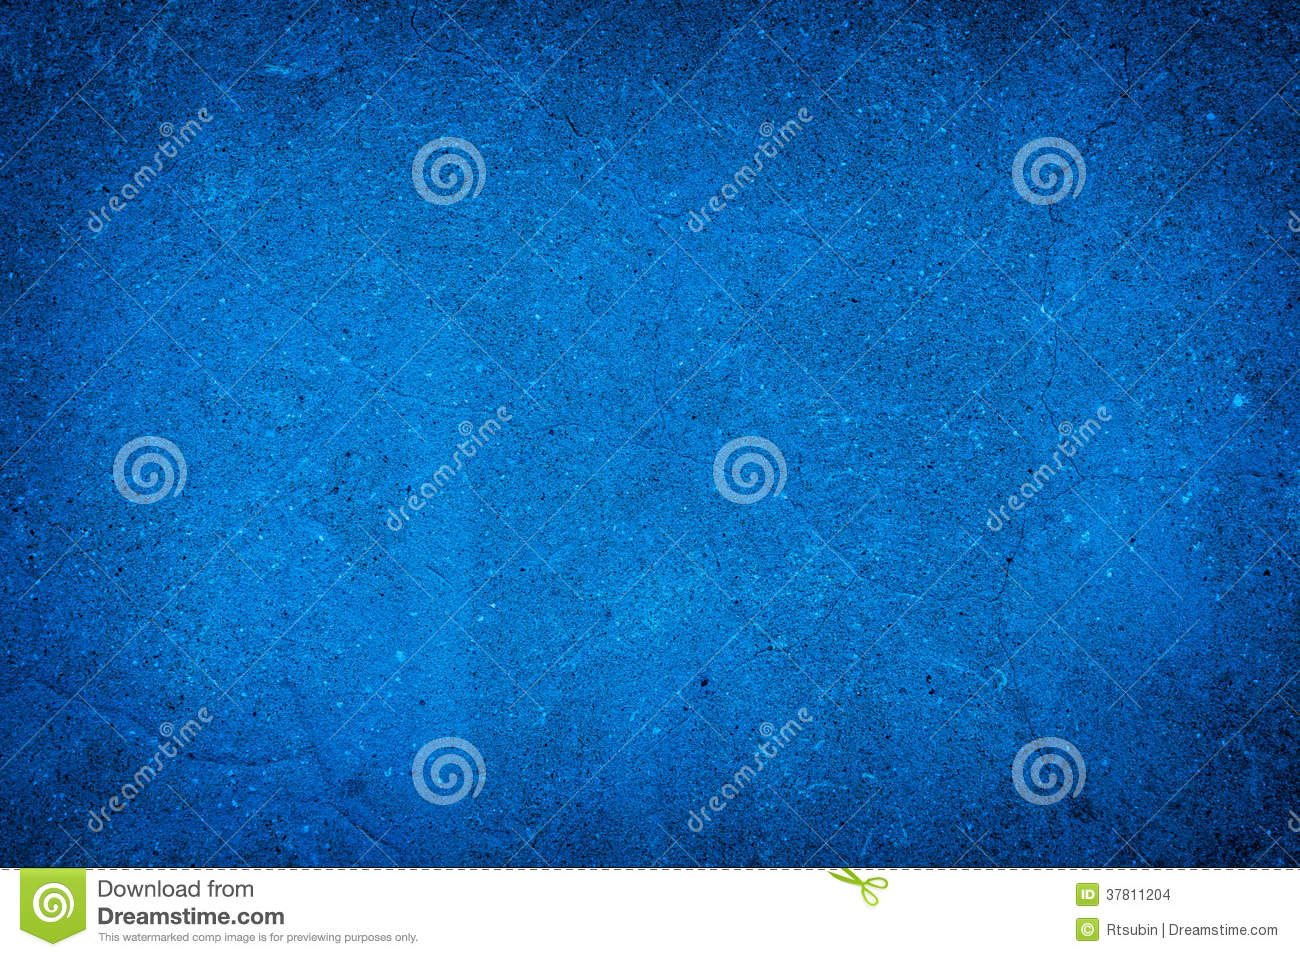 Jpg Texture Background Free Stock Photos Download 105 545: Abstract Gold Background Of Elegant Dark Blue Texture